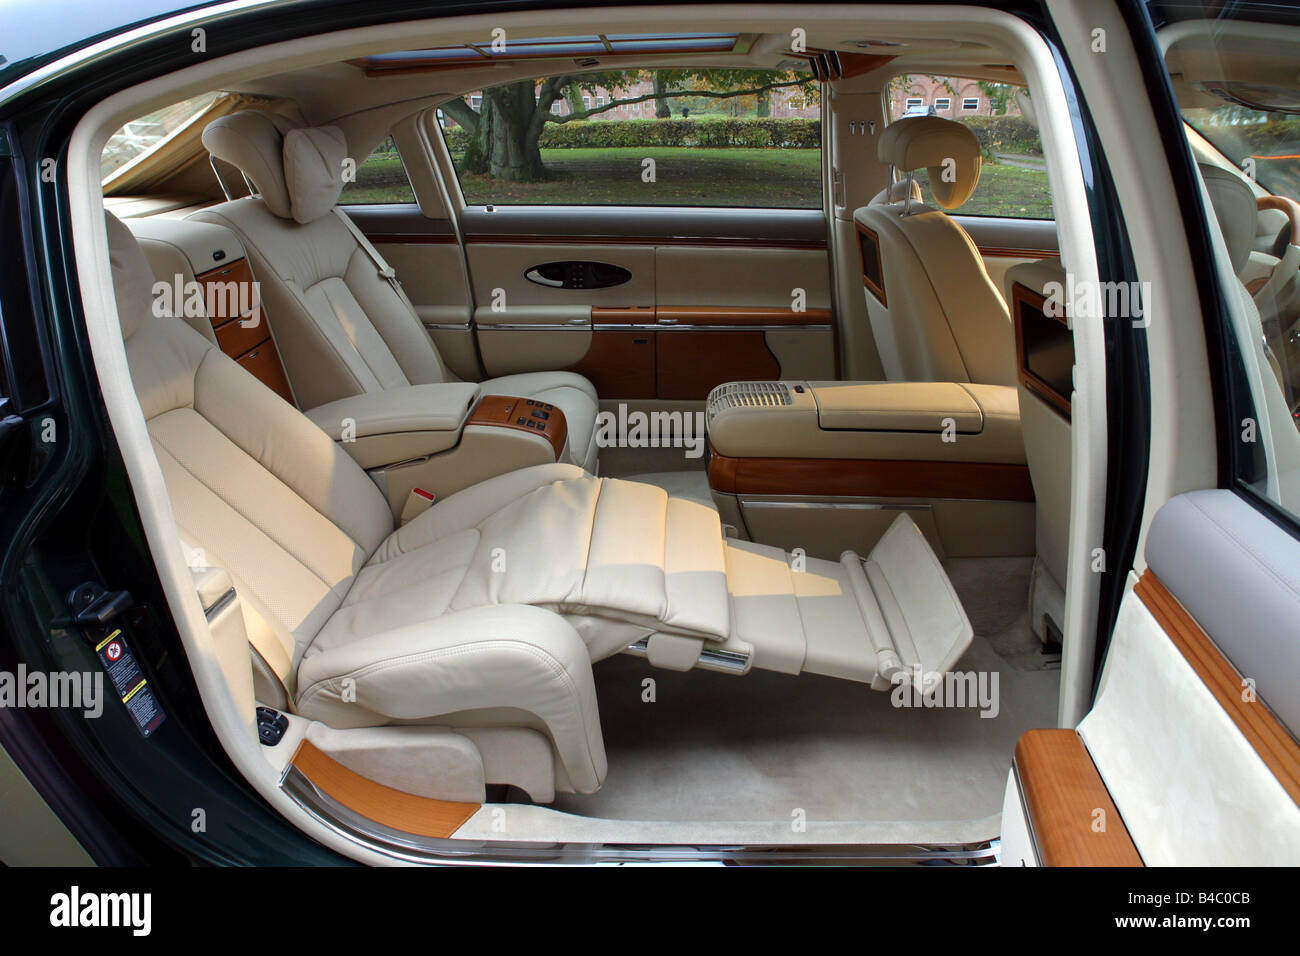 car mercedes maybach 62 luxury approx s limousine model year stock photo 19932763 alamy. Black Bedroom Furniture Sets. Home Design Ideas